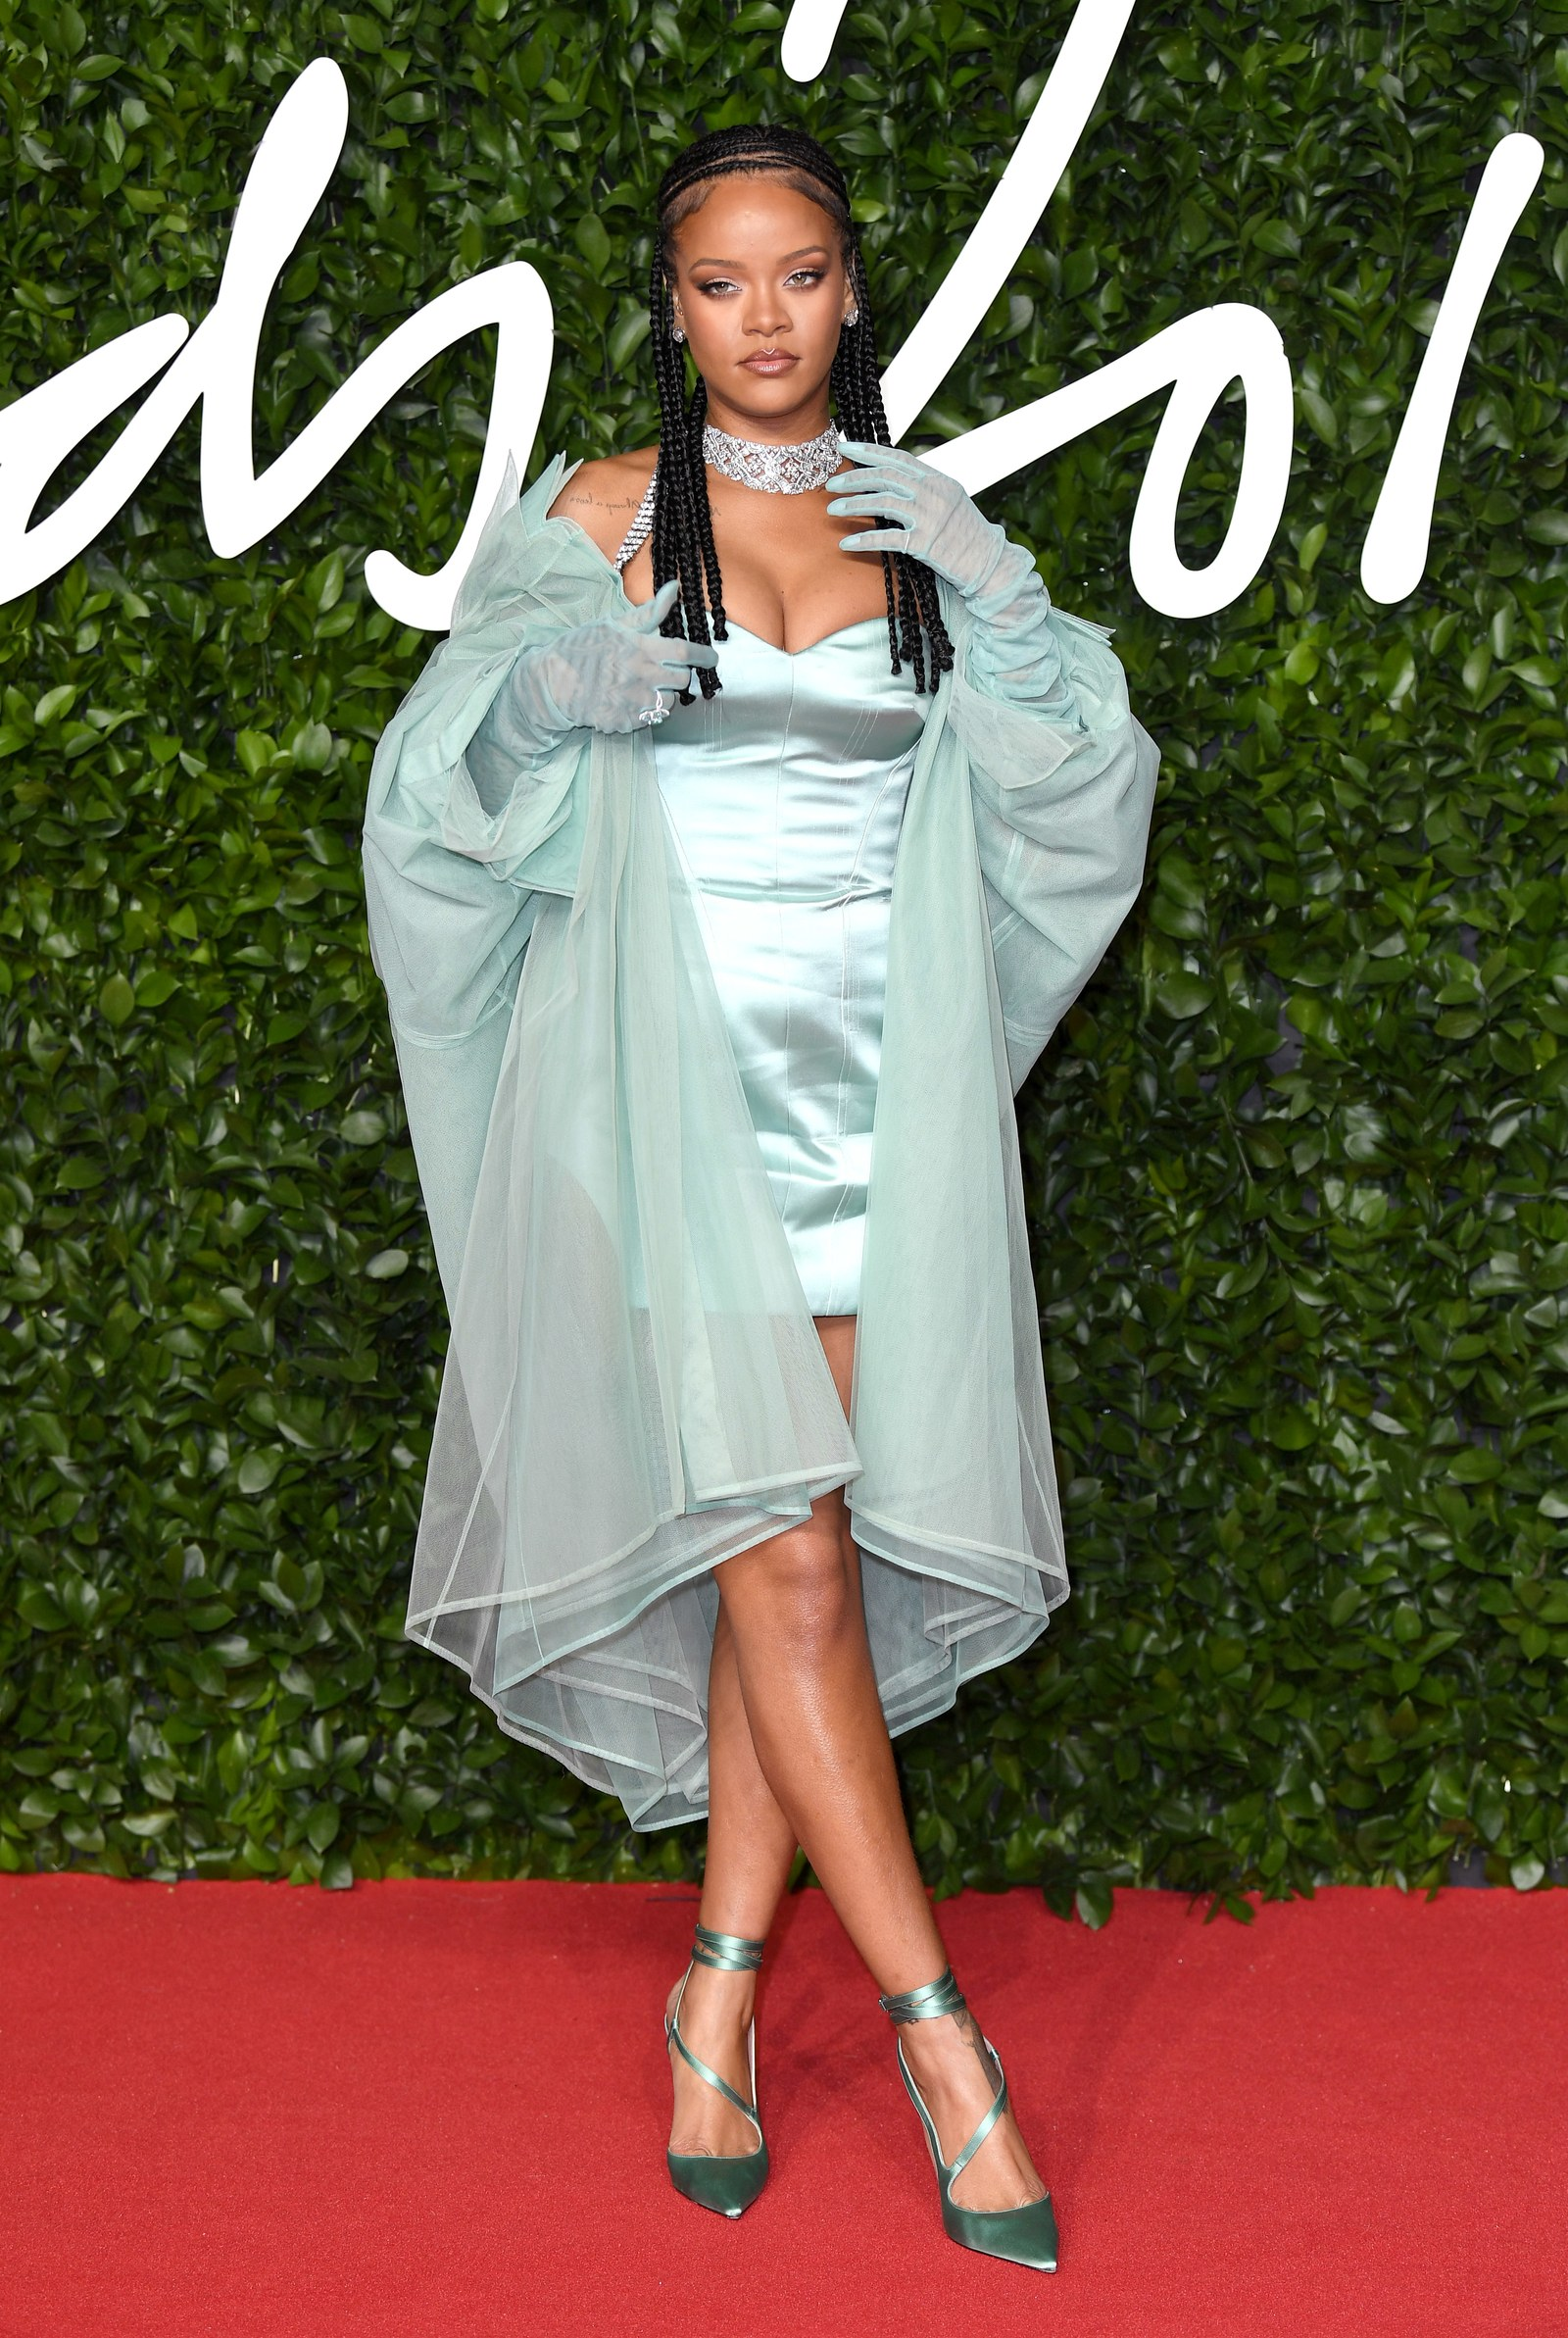 Rihanna Wins Her FirstEver Fashion Award For Fenty